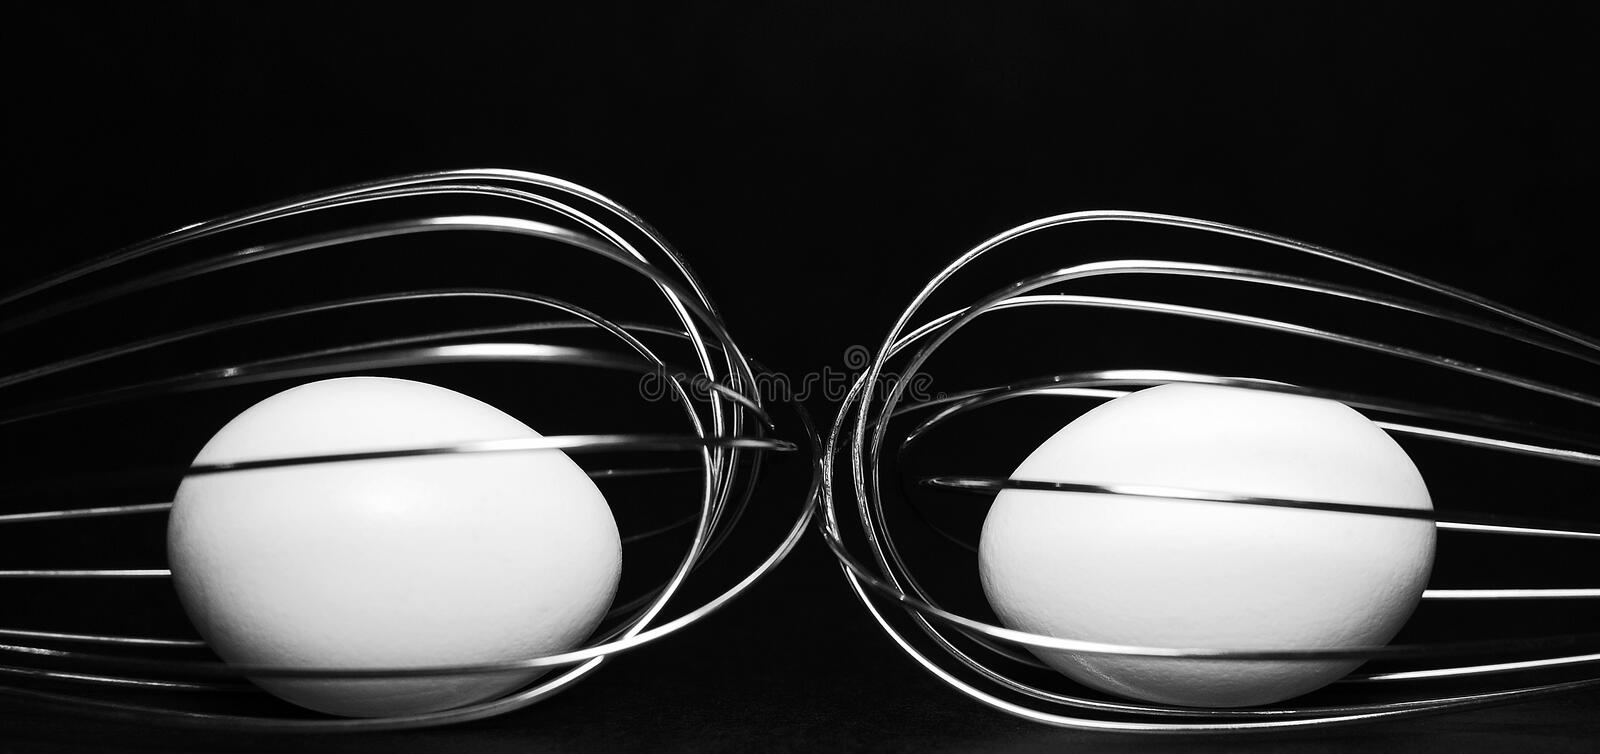 Dois Whisks e eggs fotos de stock royalty free